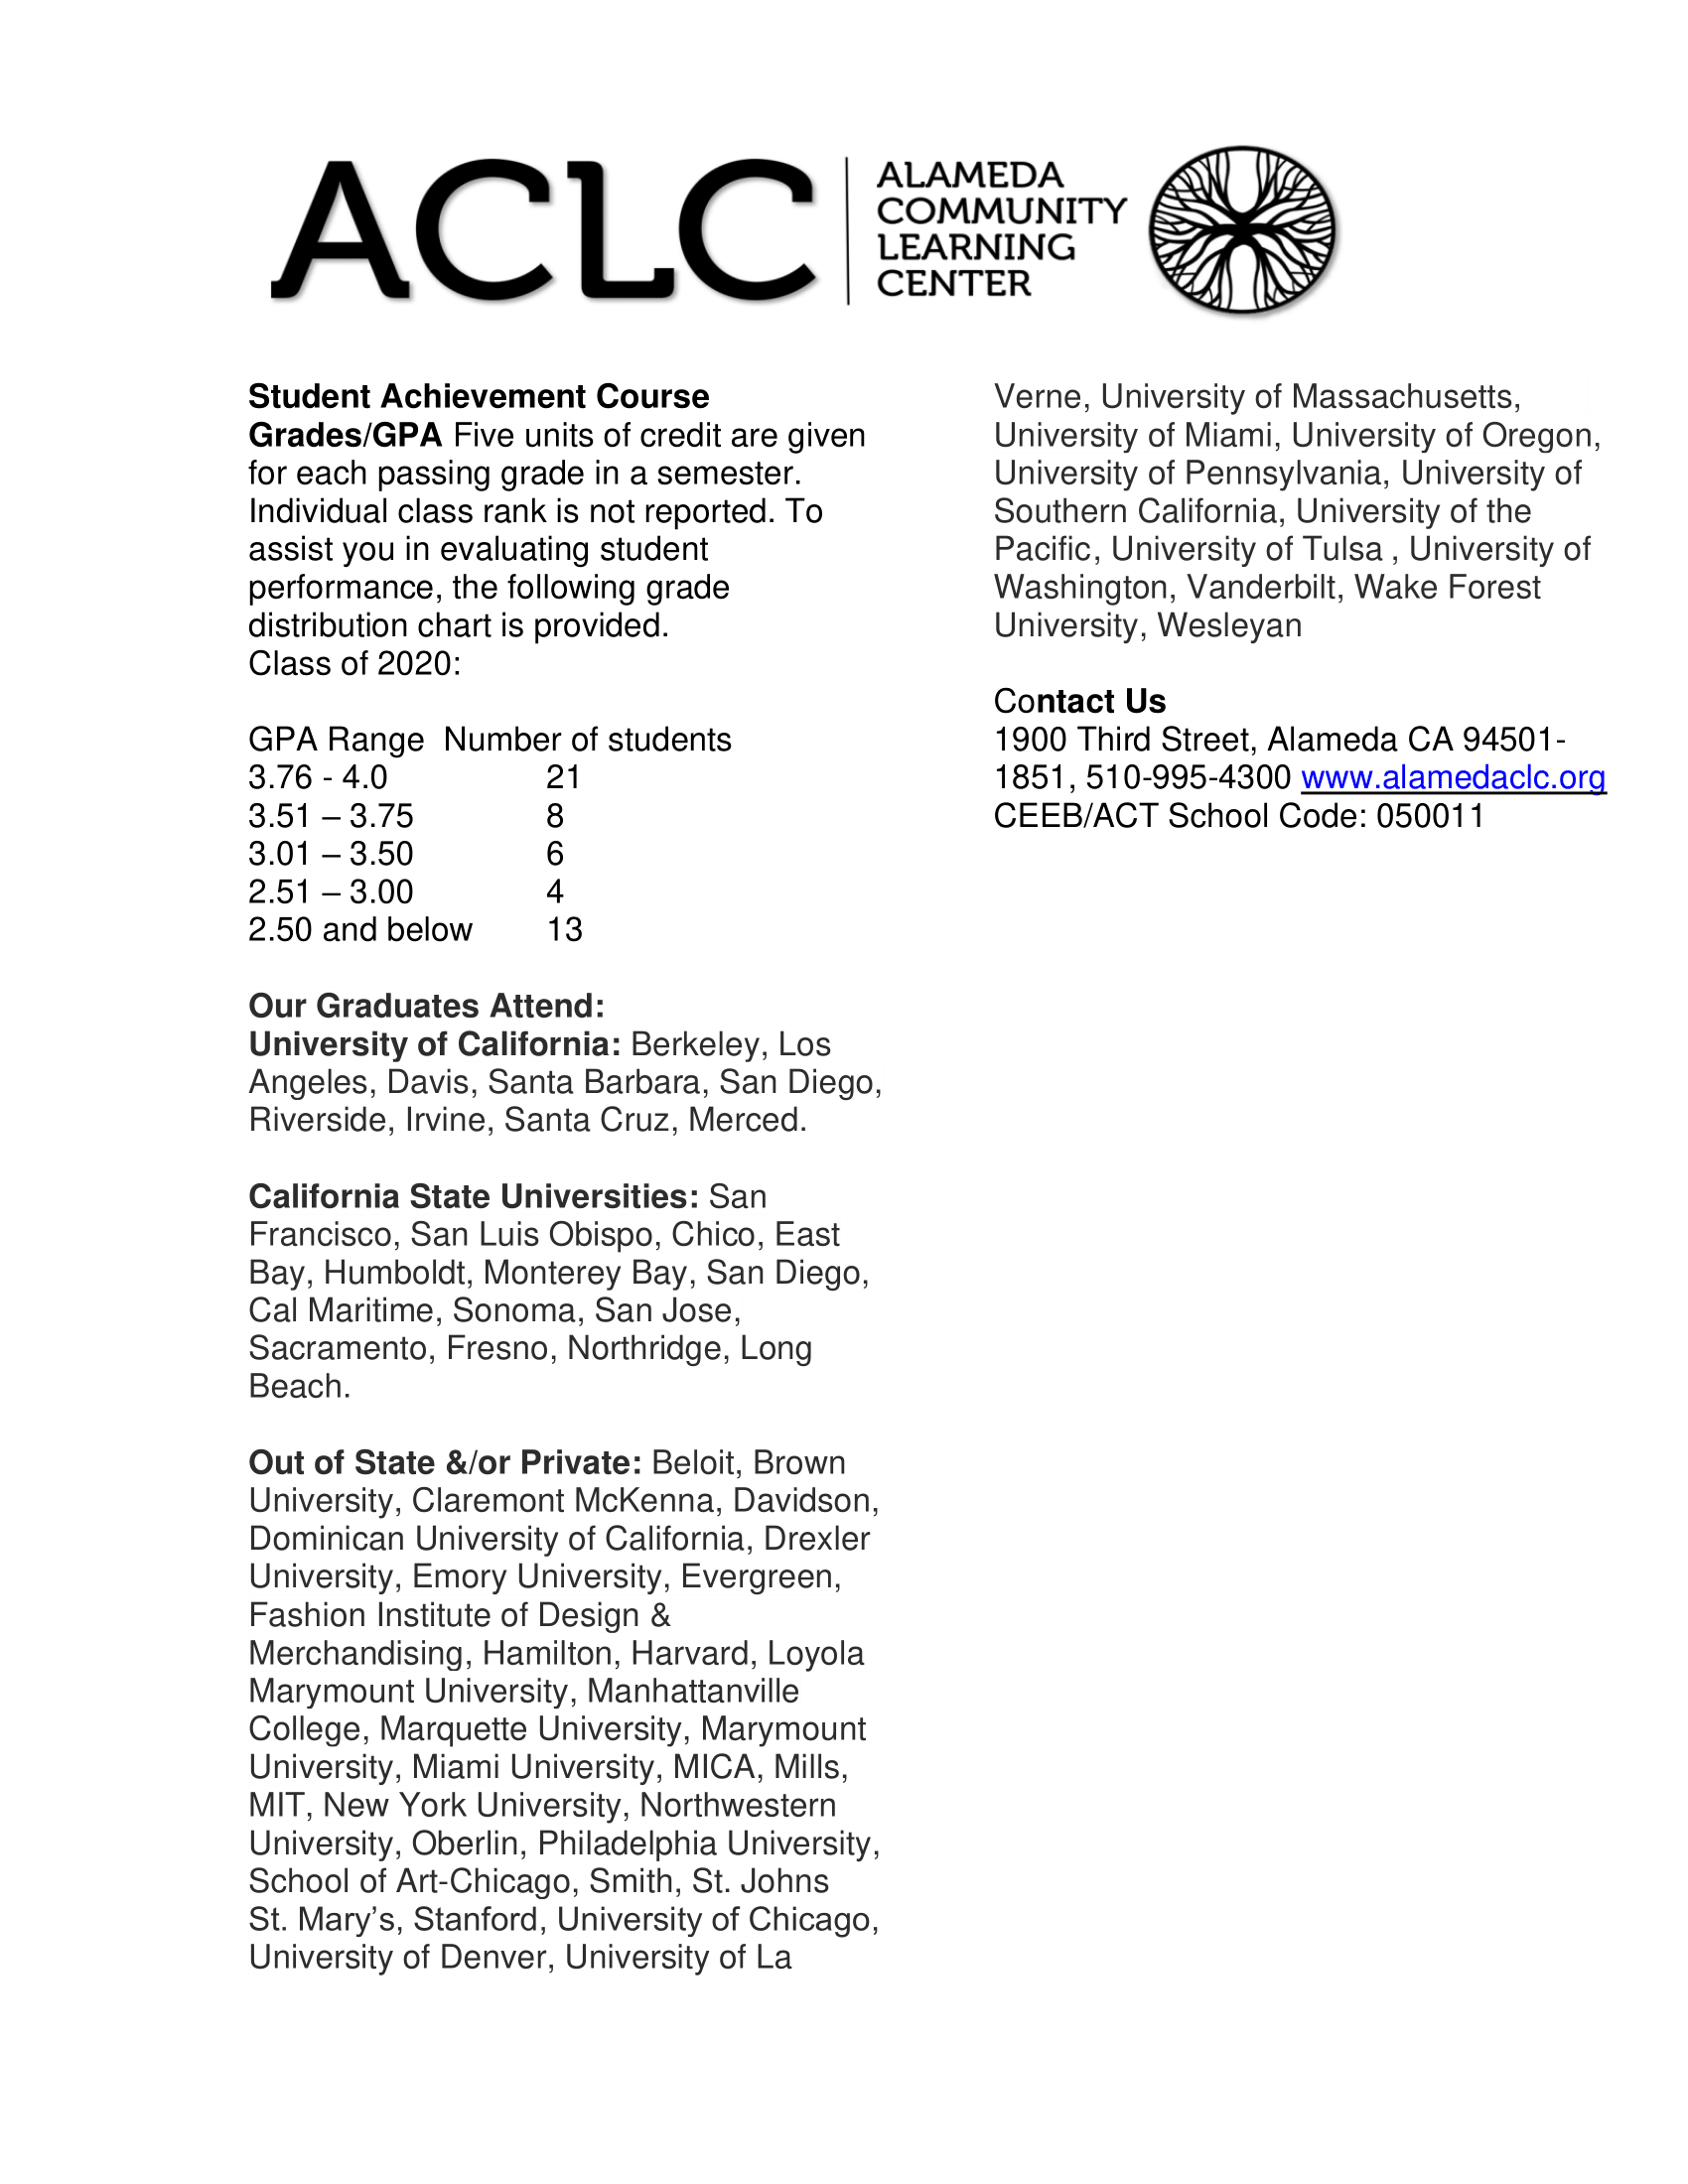 Image of ACLC School Profile p2